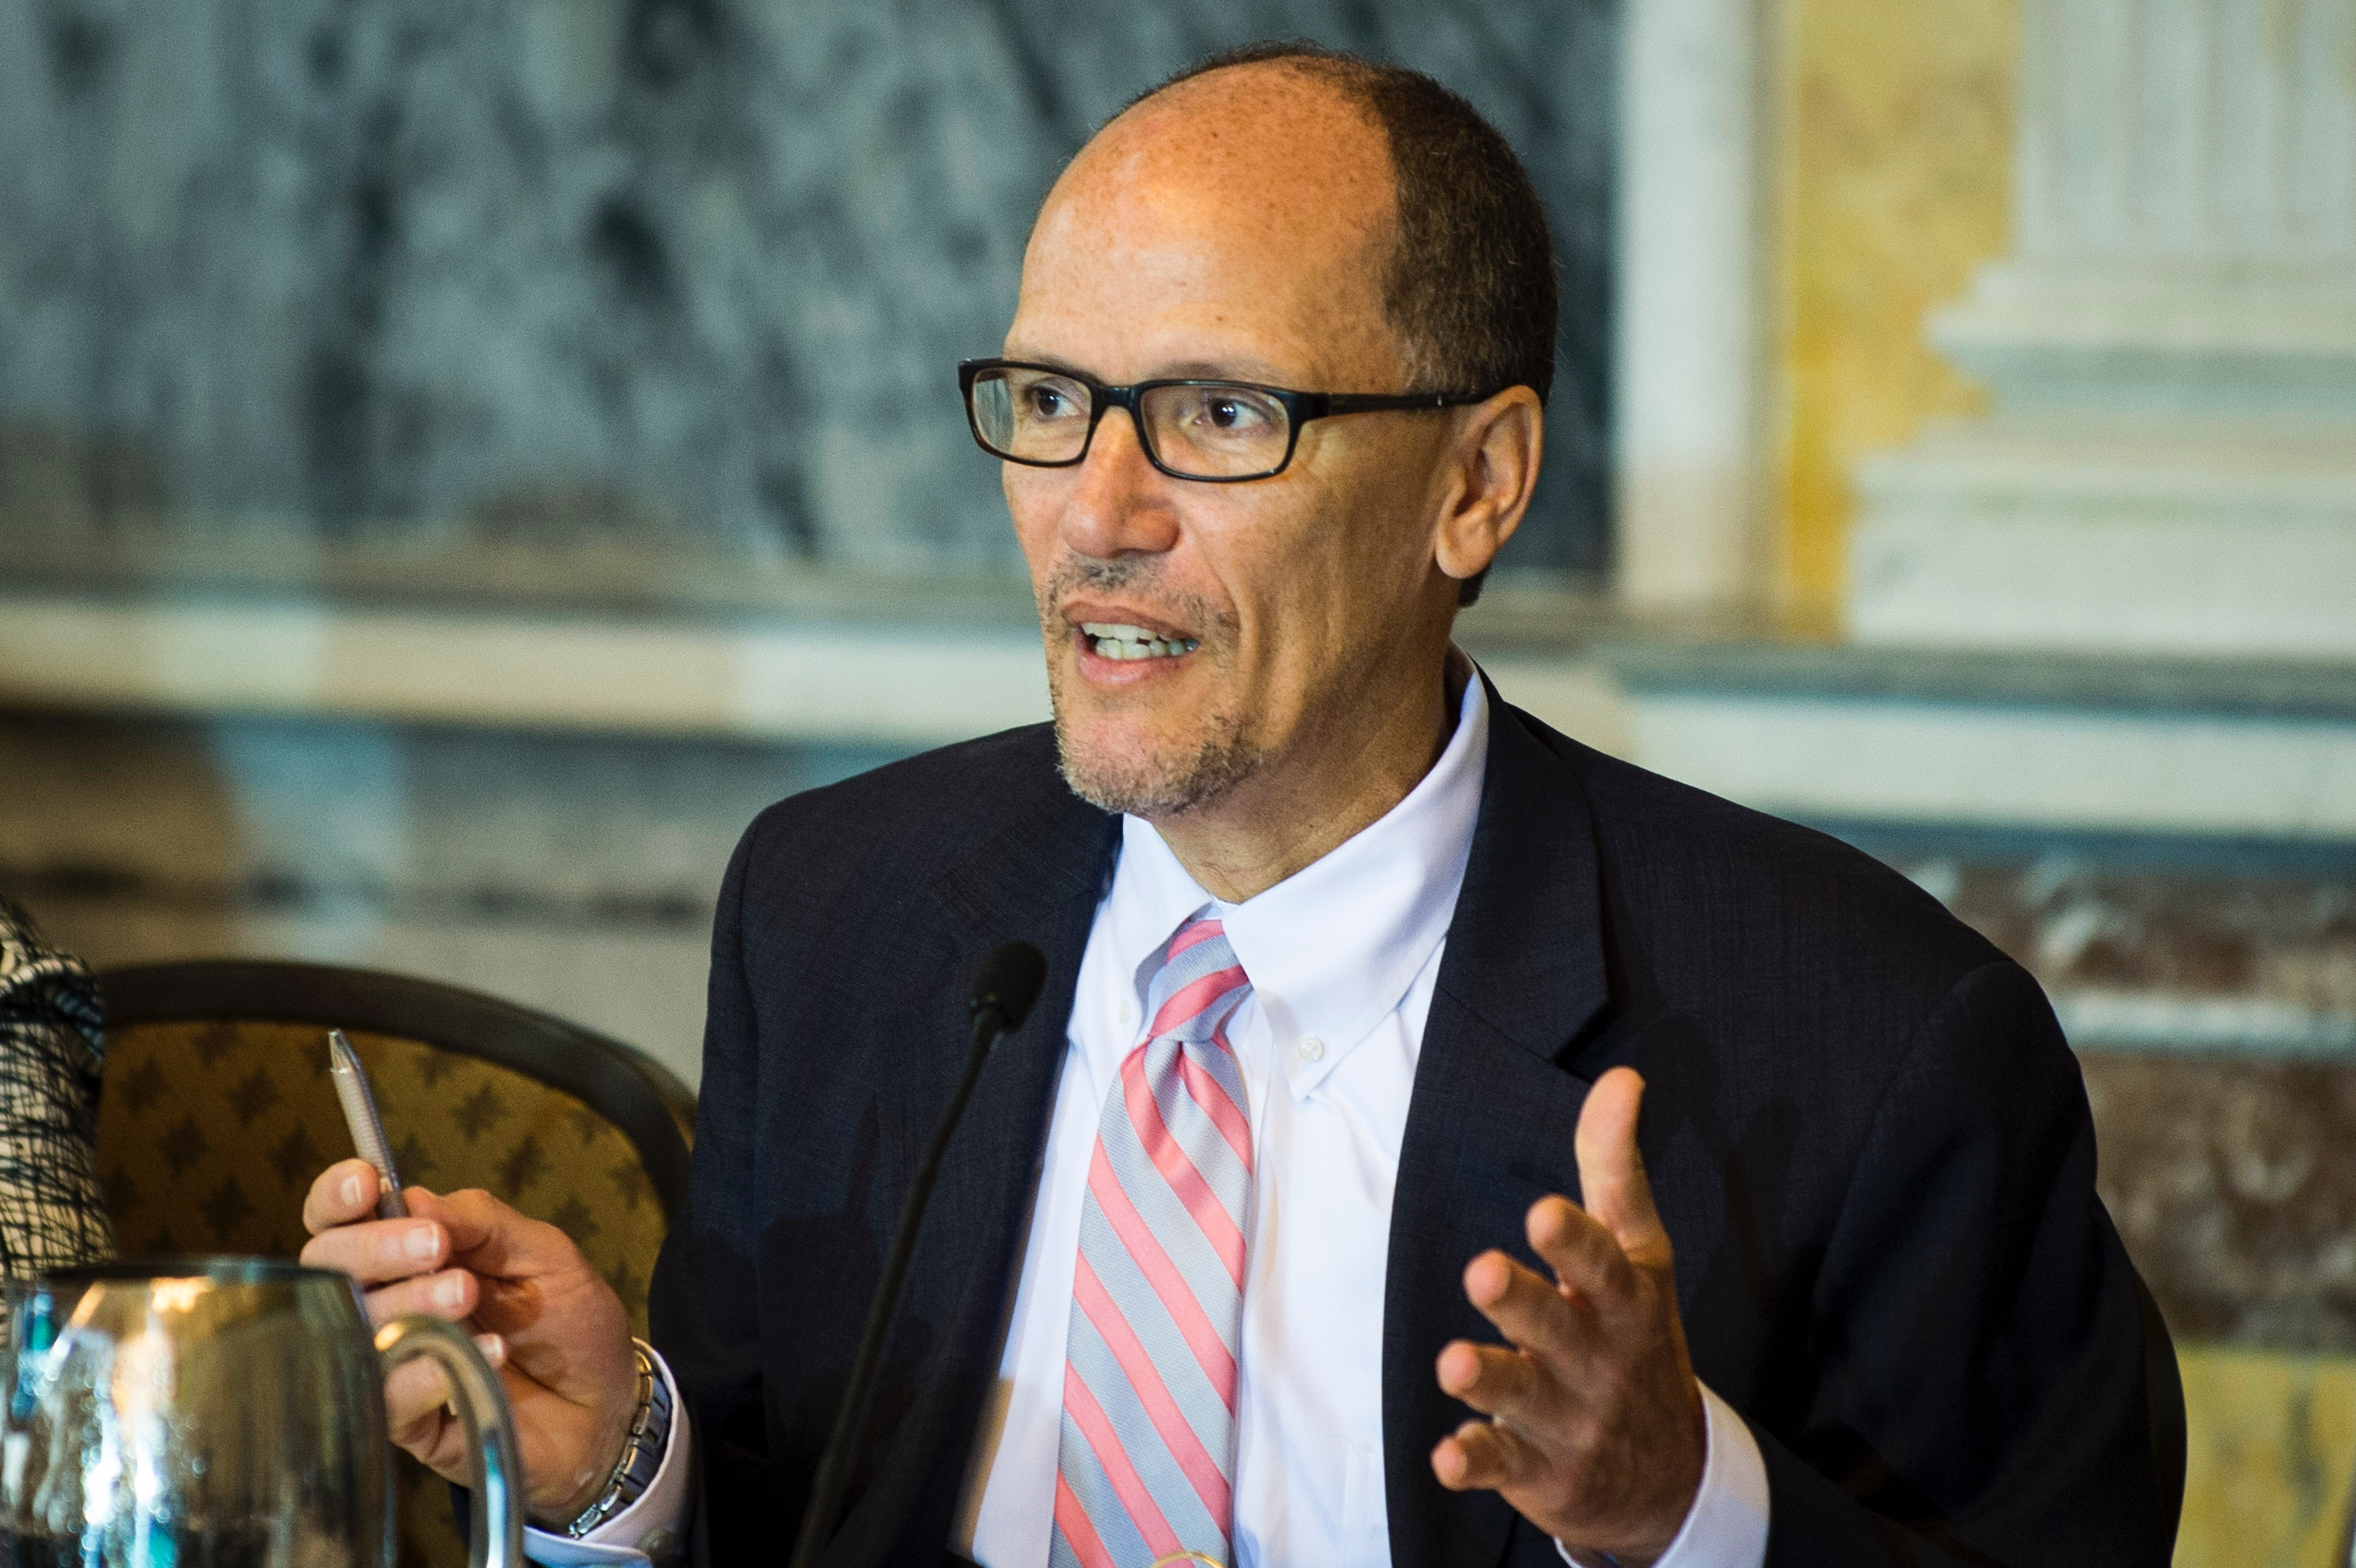 Democrats 2018: Chairman Tom Perez Asks For DNC Staff Resignations